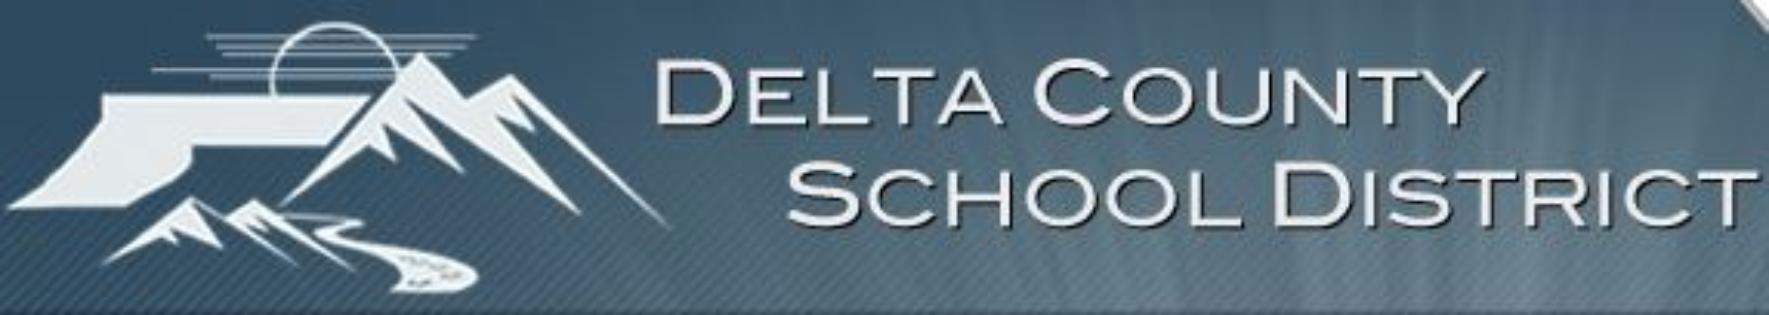 Delta County School District